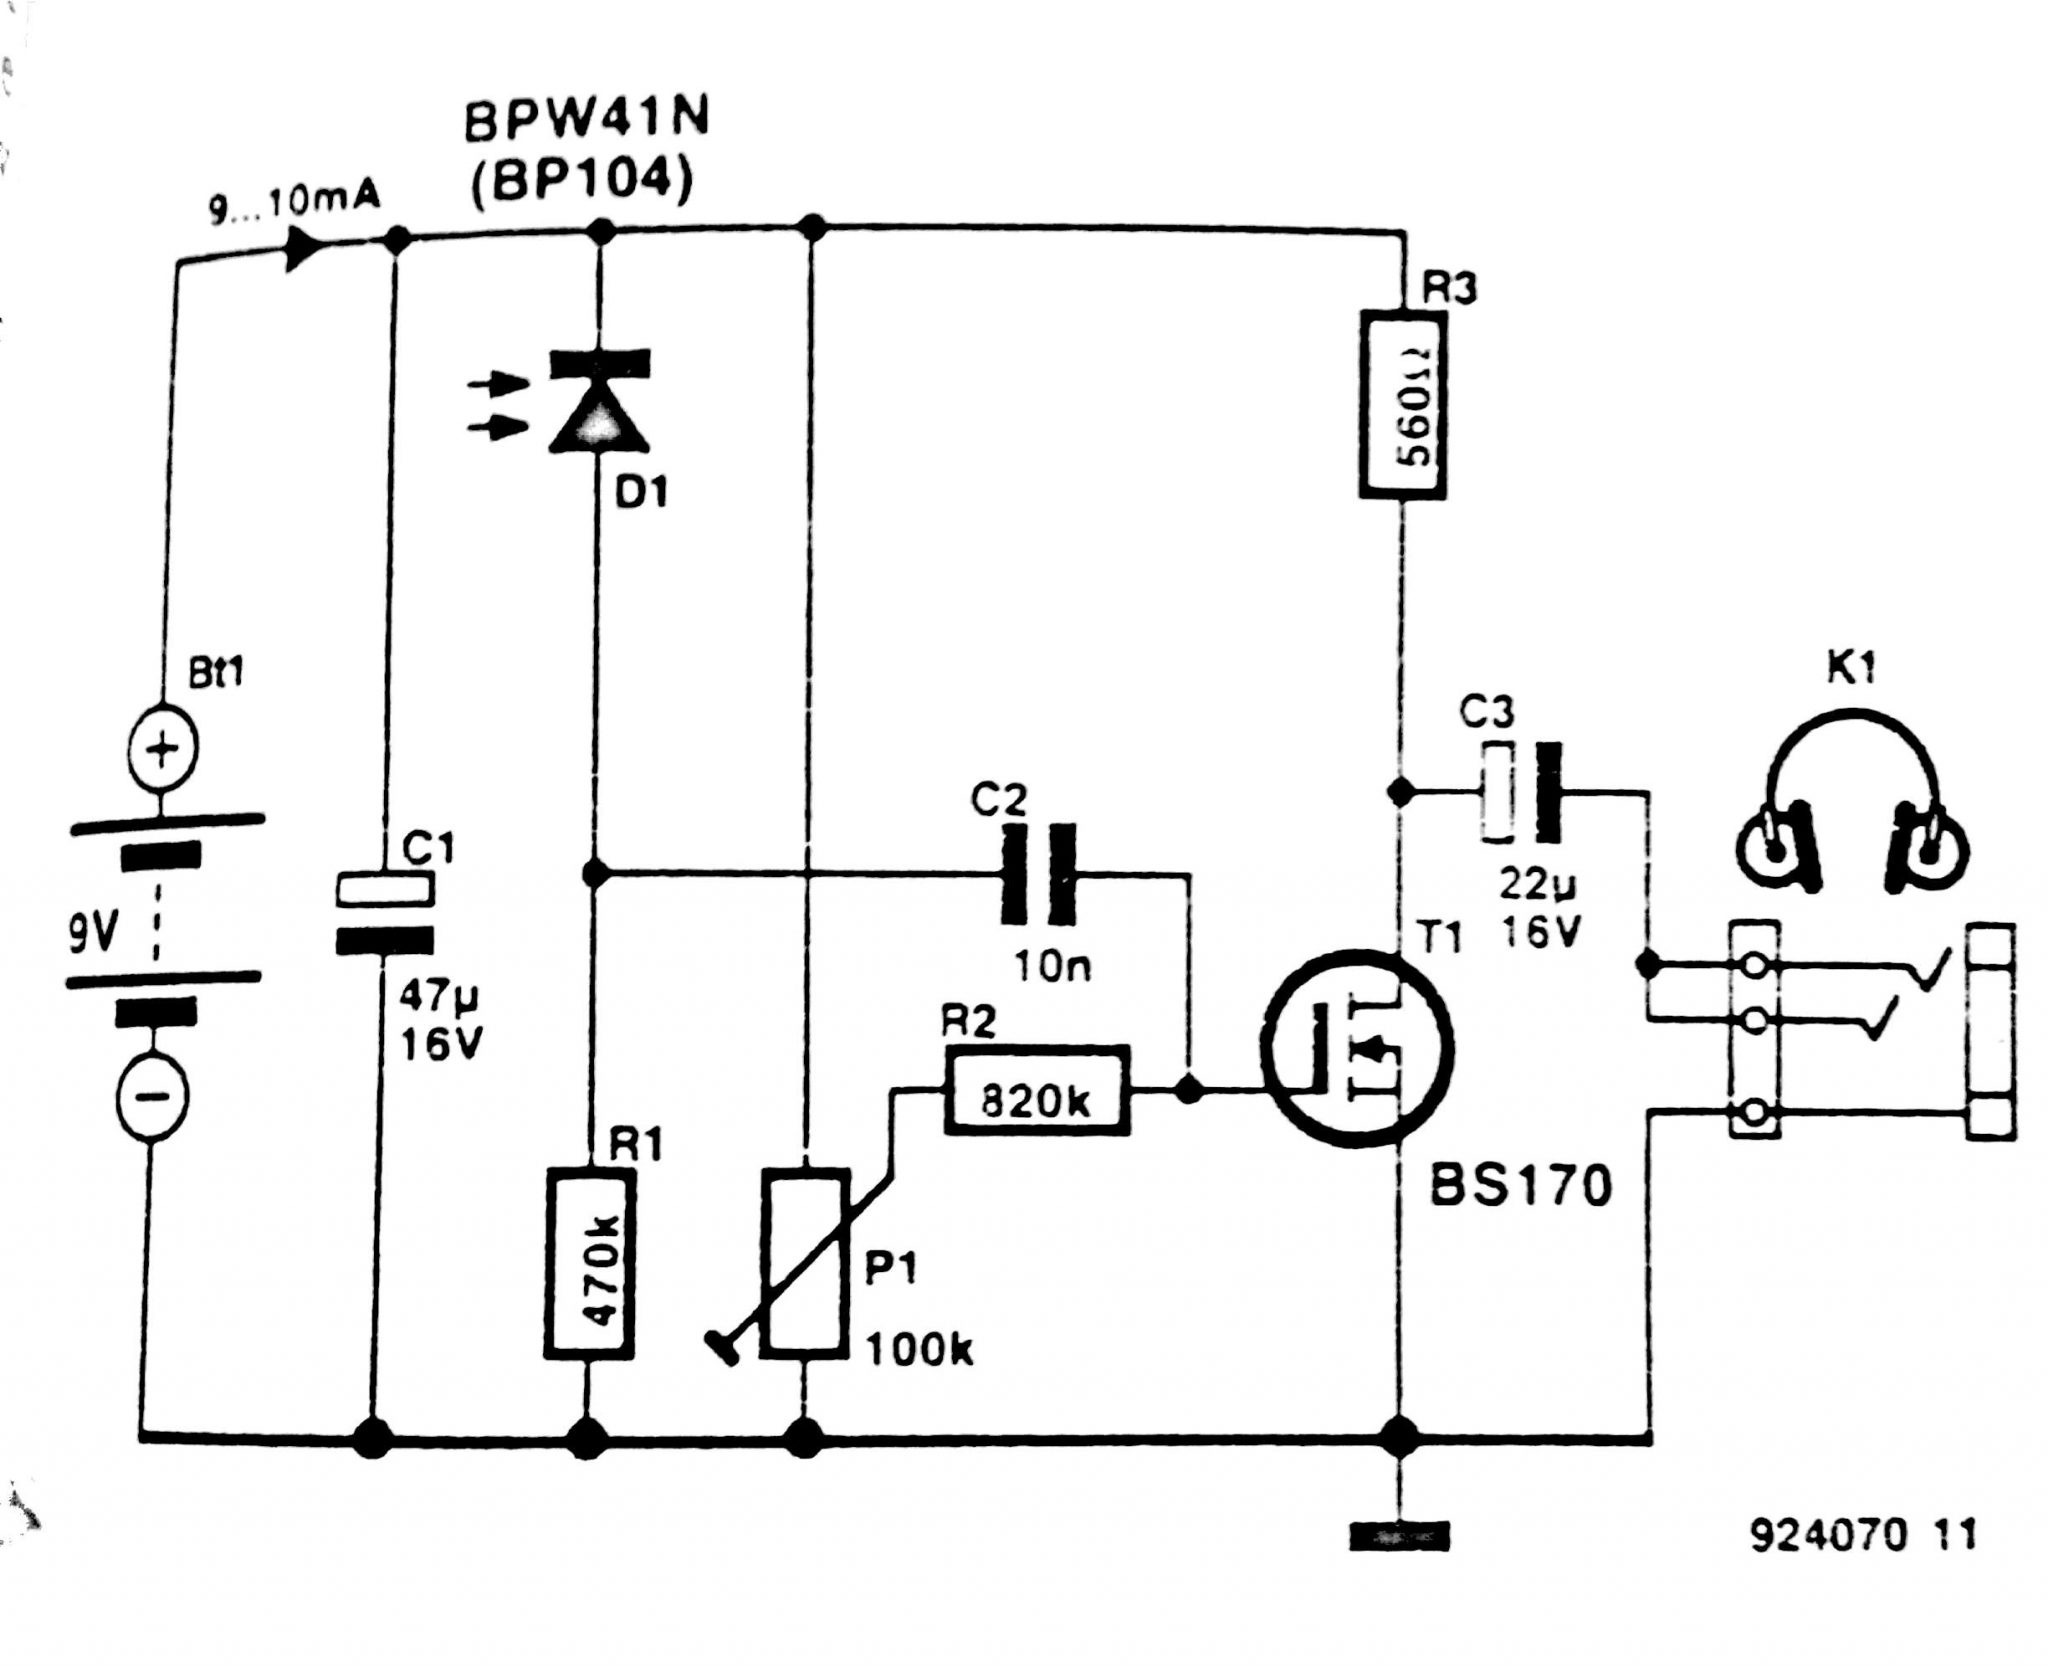 infrared headphone receiver circuit diagram rh circuit diagramz com ir led receiver circuit diagram long range ir transmitter and receiver circuit diagram